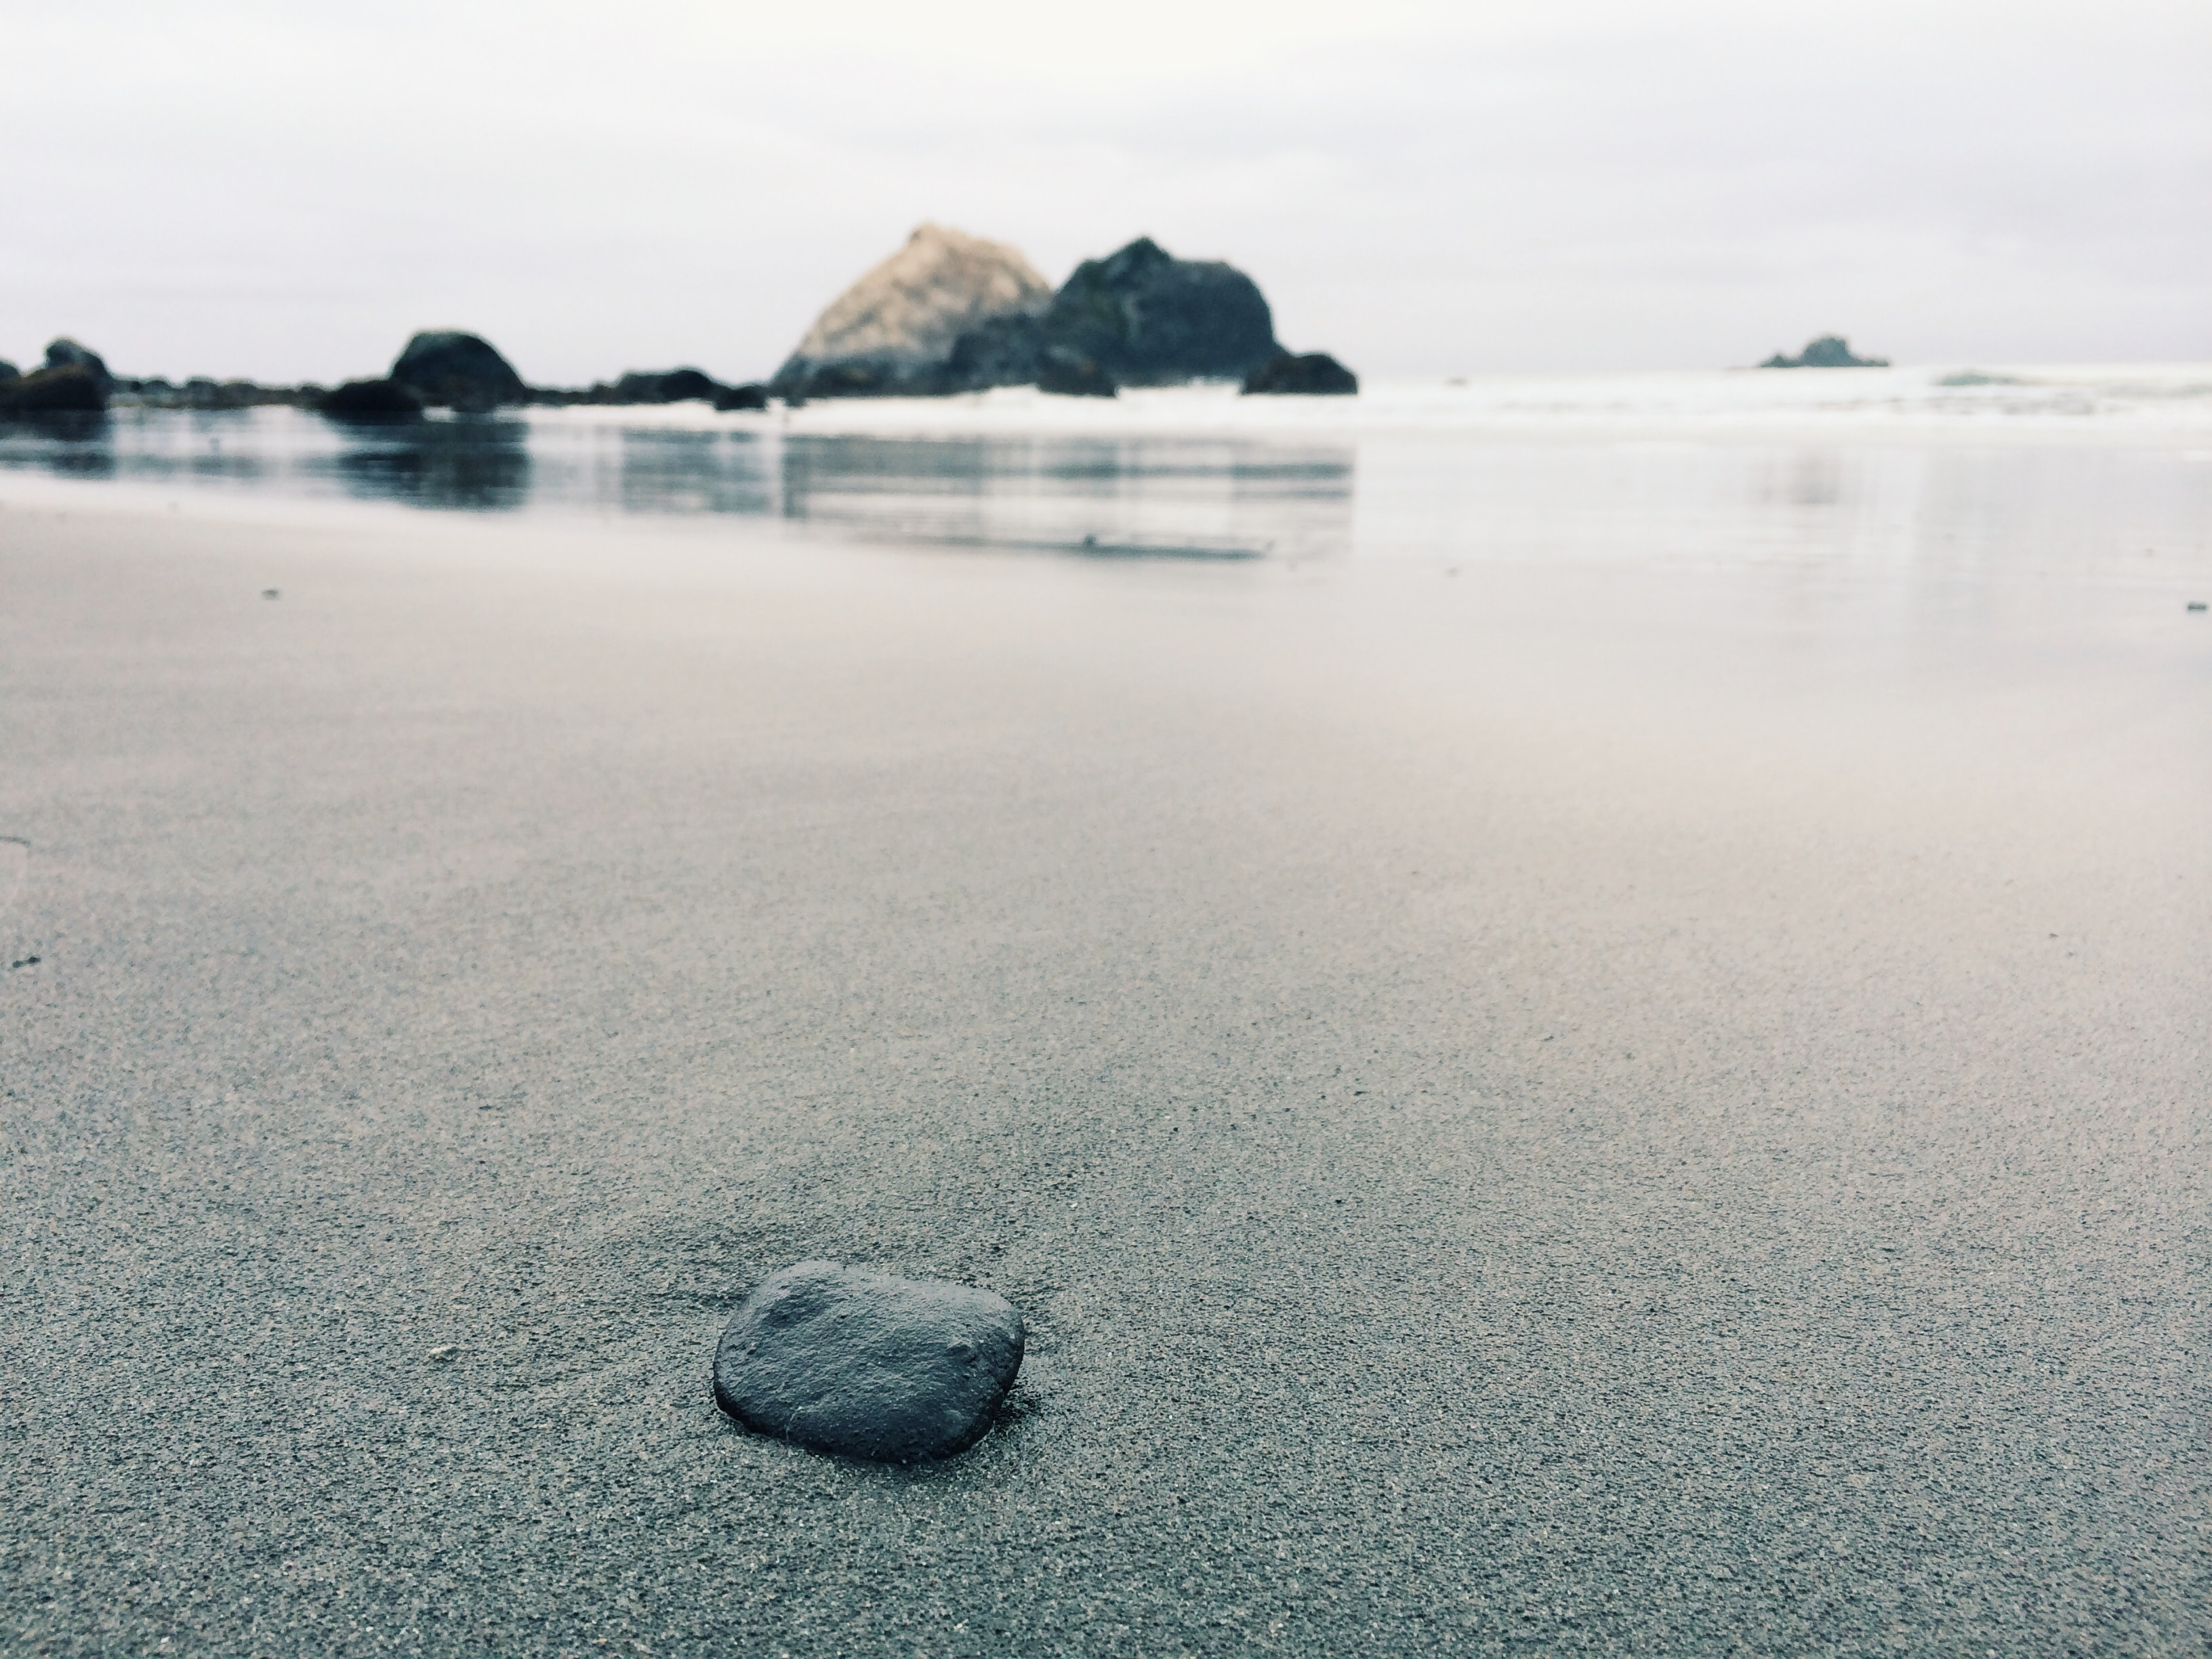 Small rock on the fine wet sand beach coast